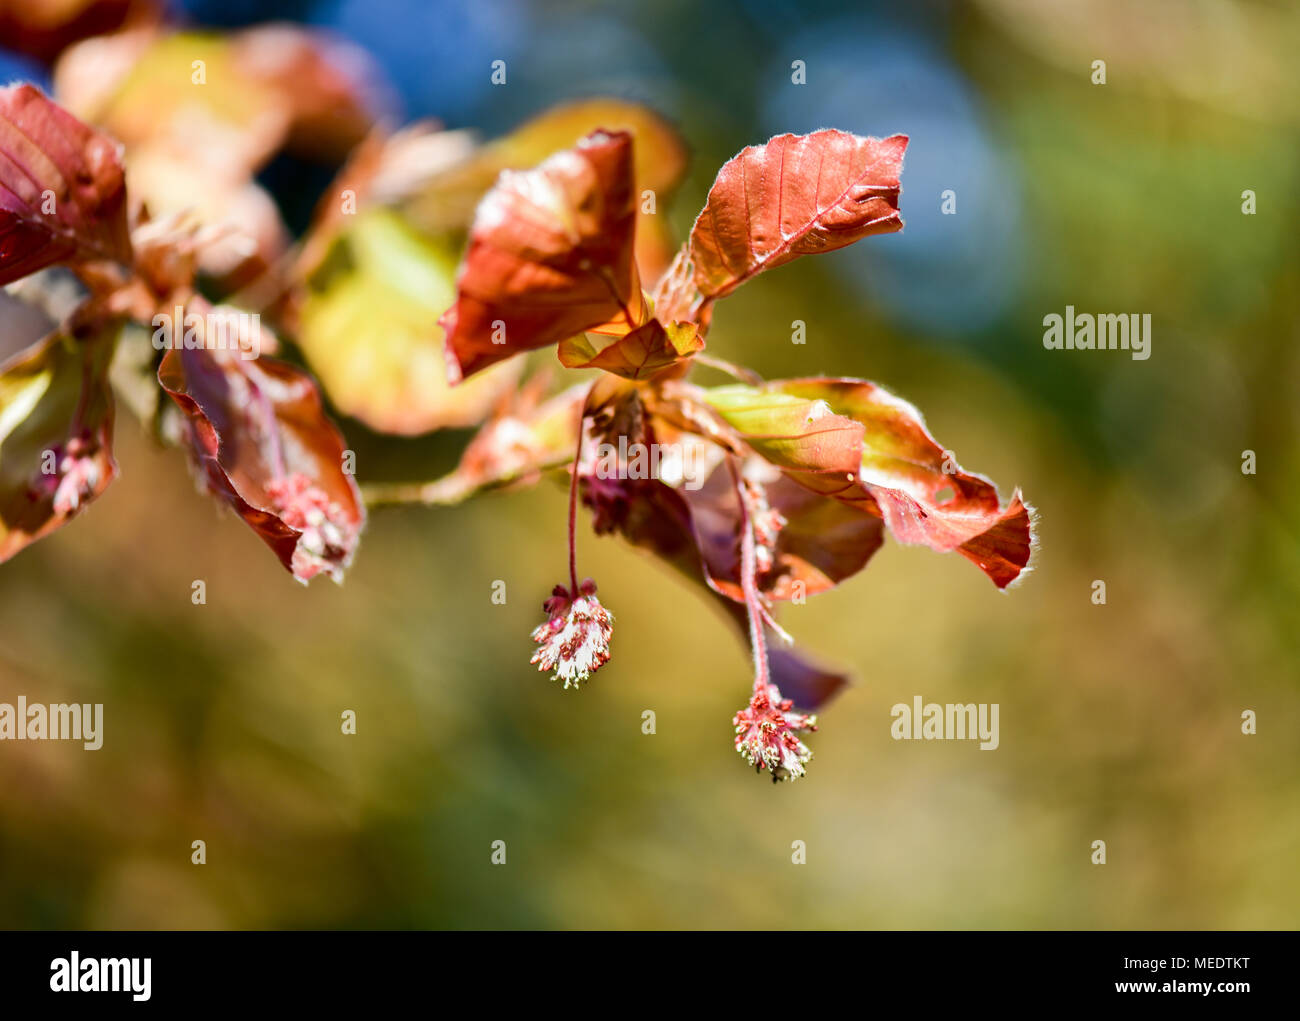 Young leaf of purple beech and pollen on it. - Stock Image